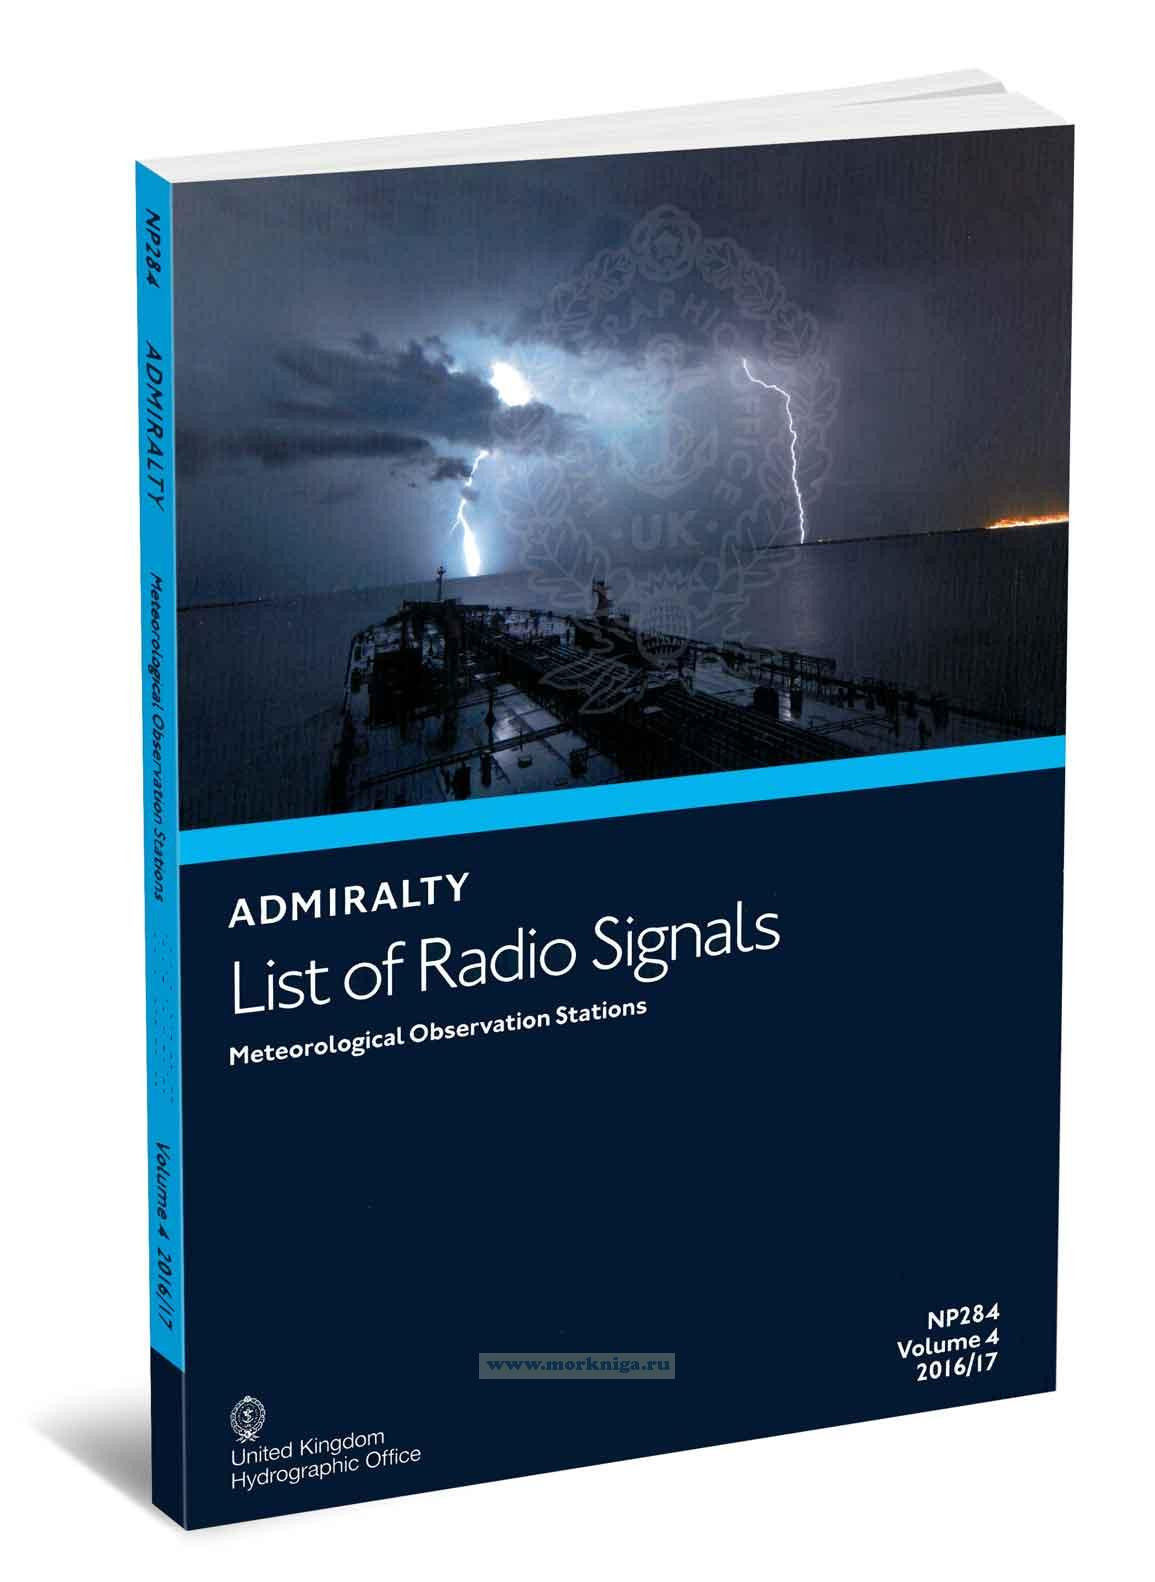 Admiralty list of radio signals. Vol 4. NP284 (ALRS). Meteorological observation stations. 2016/2017